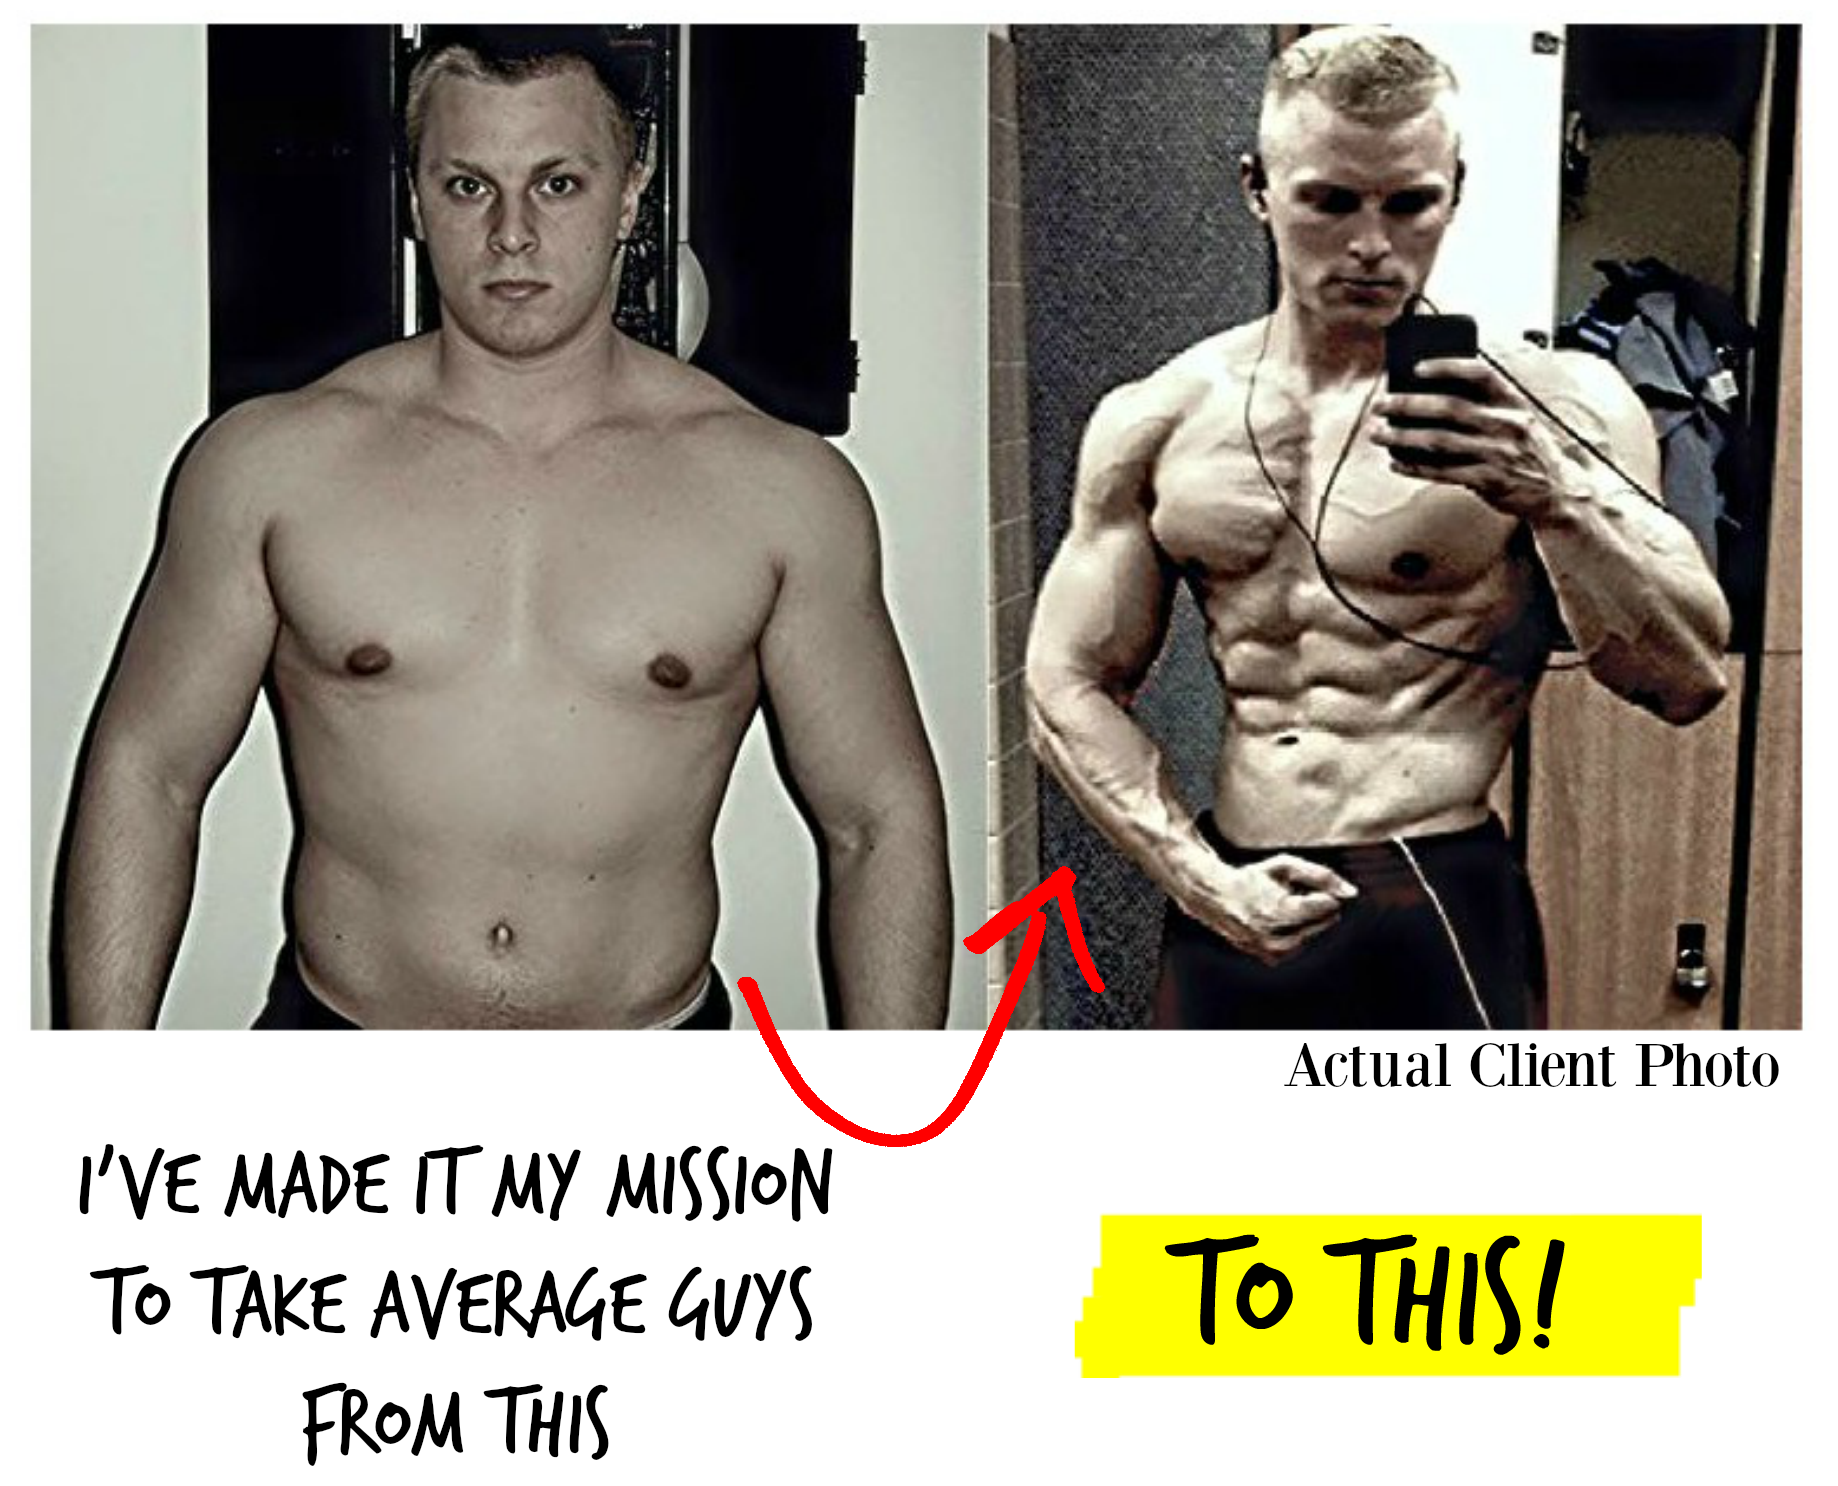 Johny Transformation - Anabolic Running